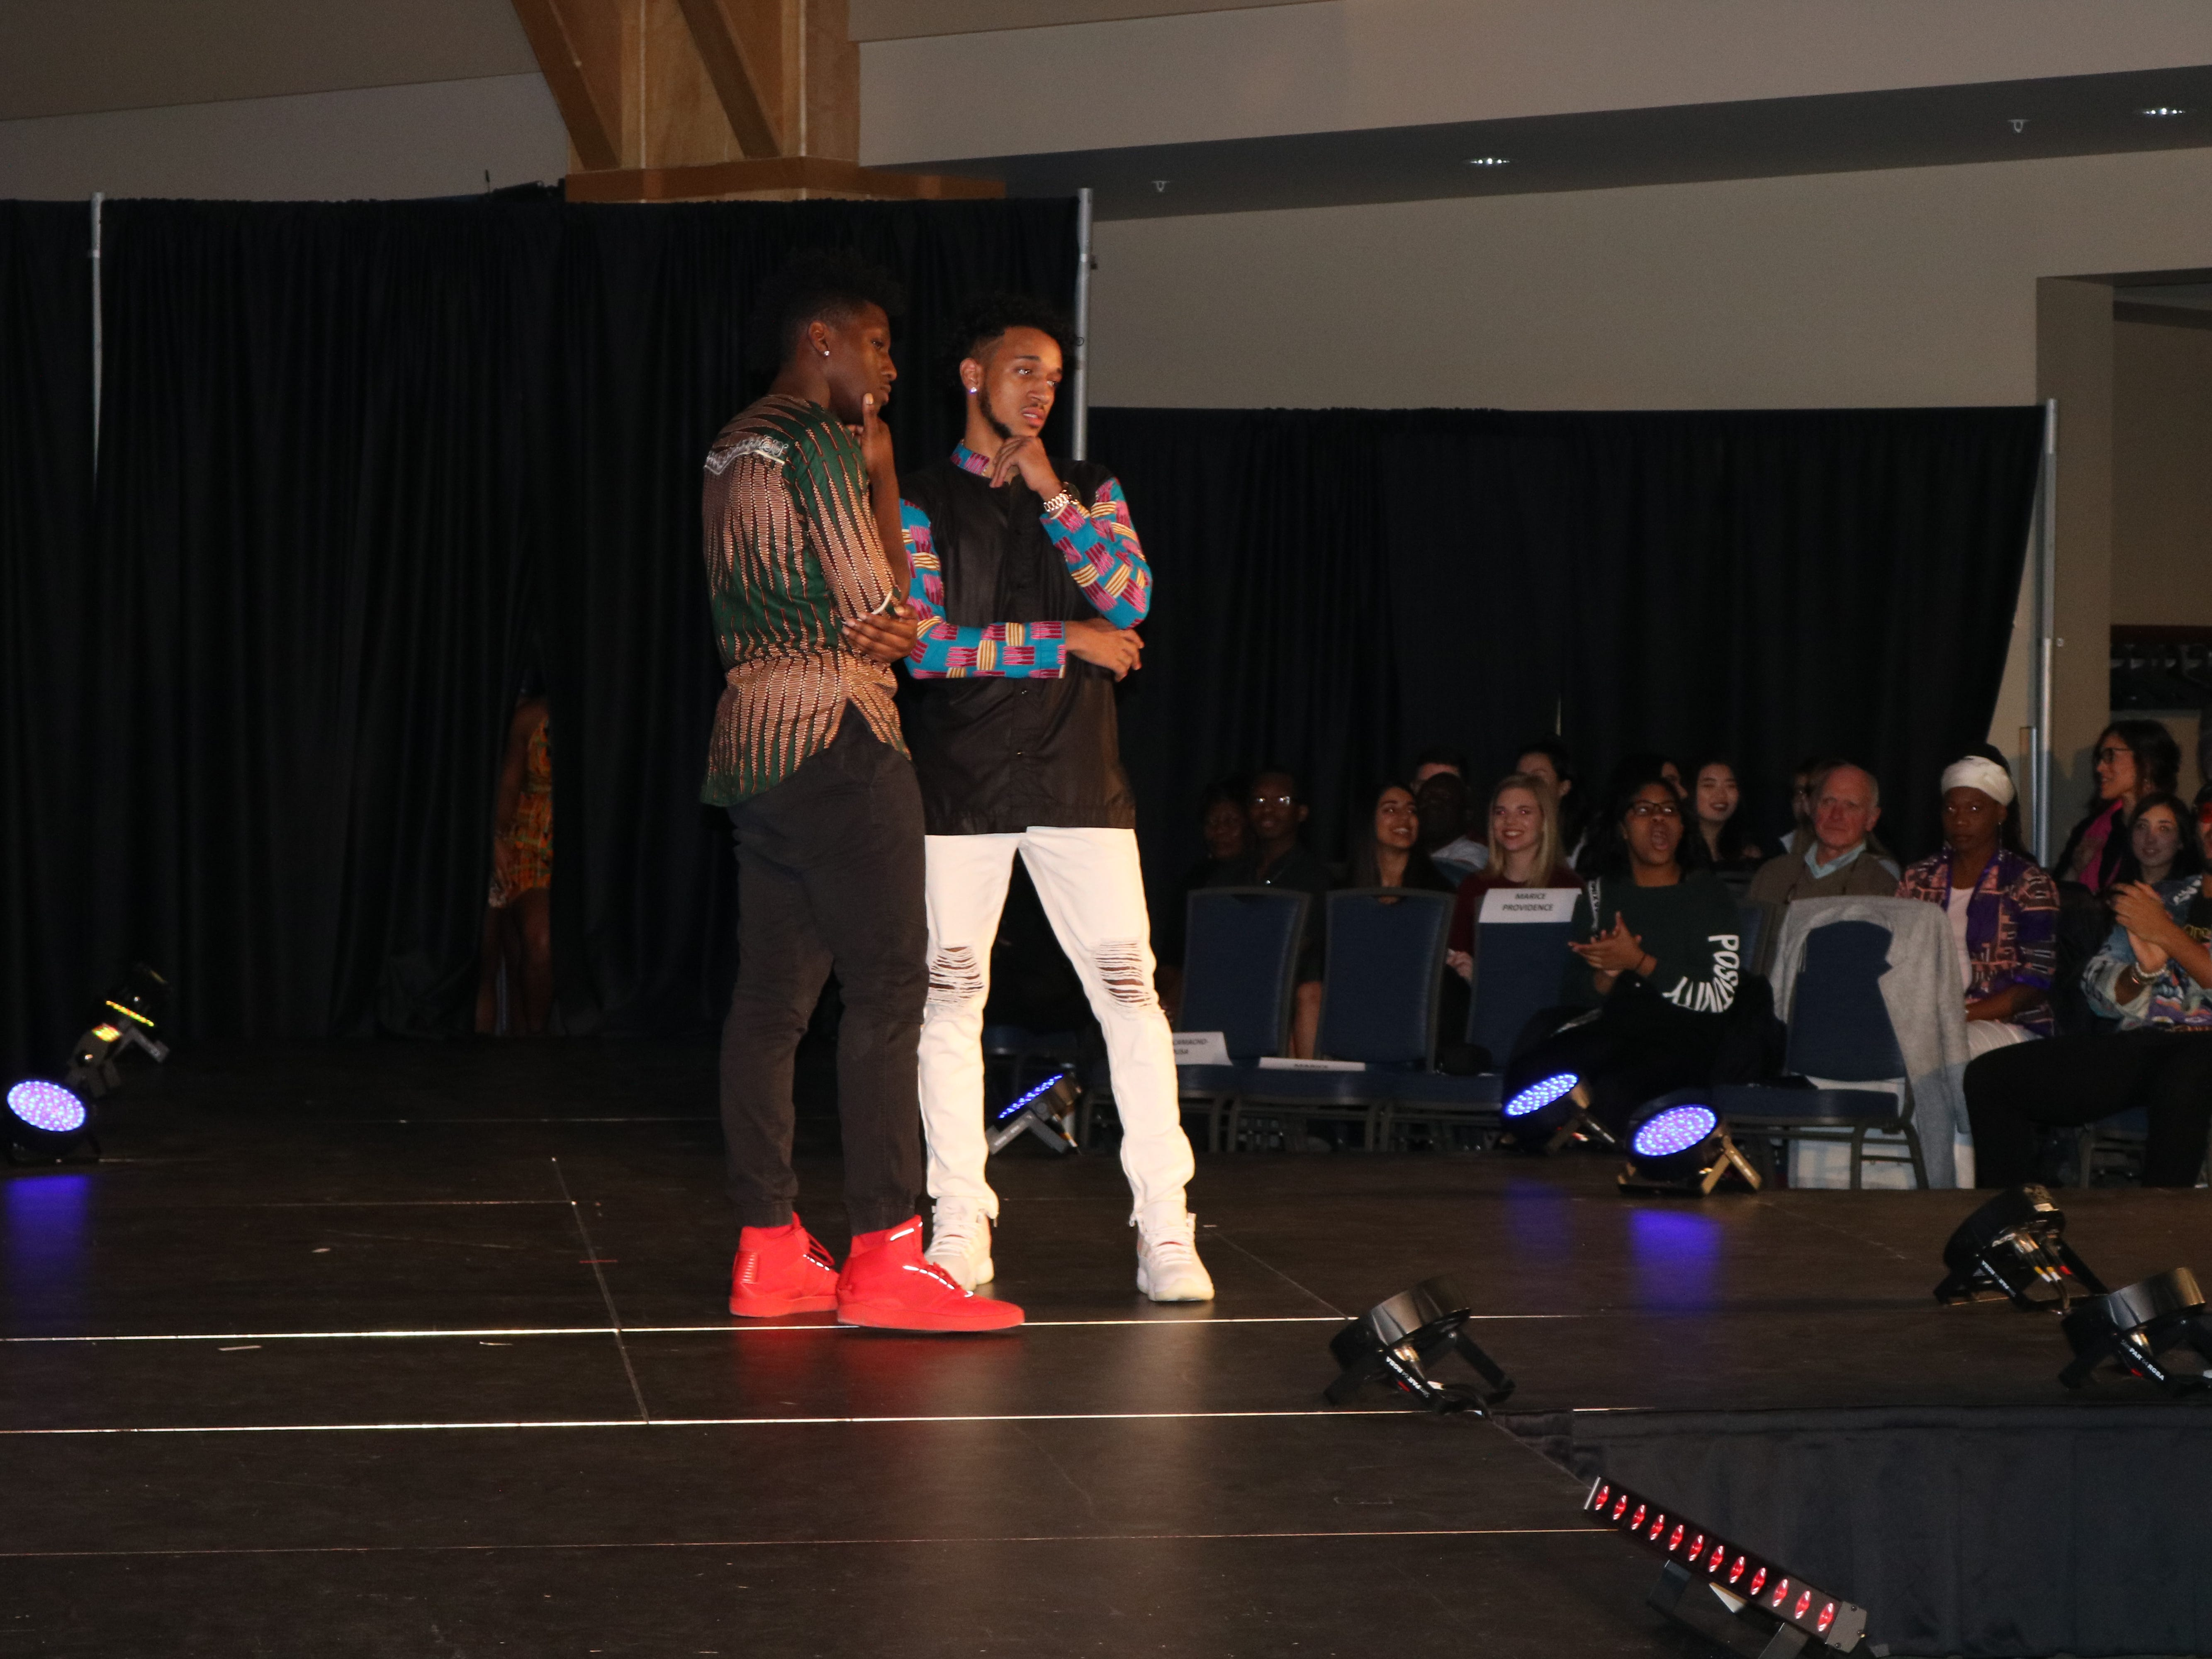 """Models pose in scenes created by coaches, who help create a dynamic show for viewers at UVM's 2019 fashion show, """"Paint it Black,"""" on Sat. Feb. 23, 2019."""